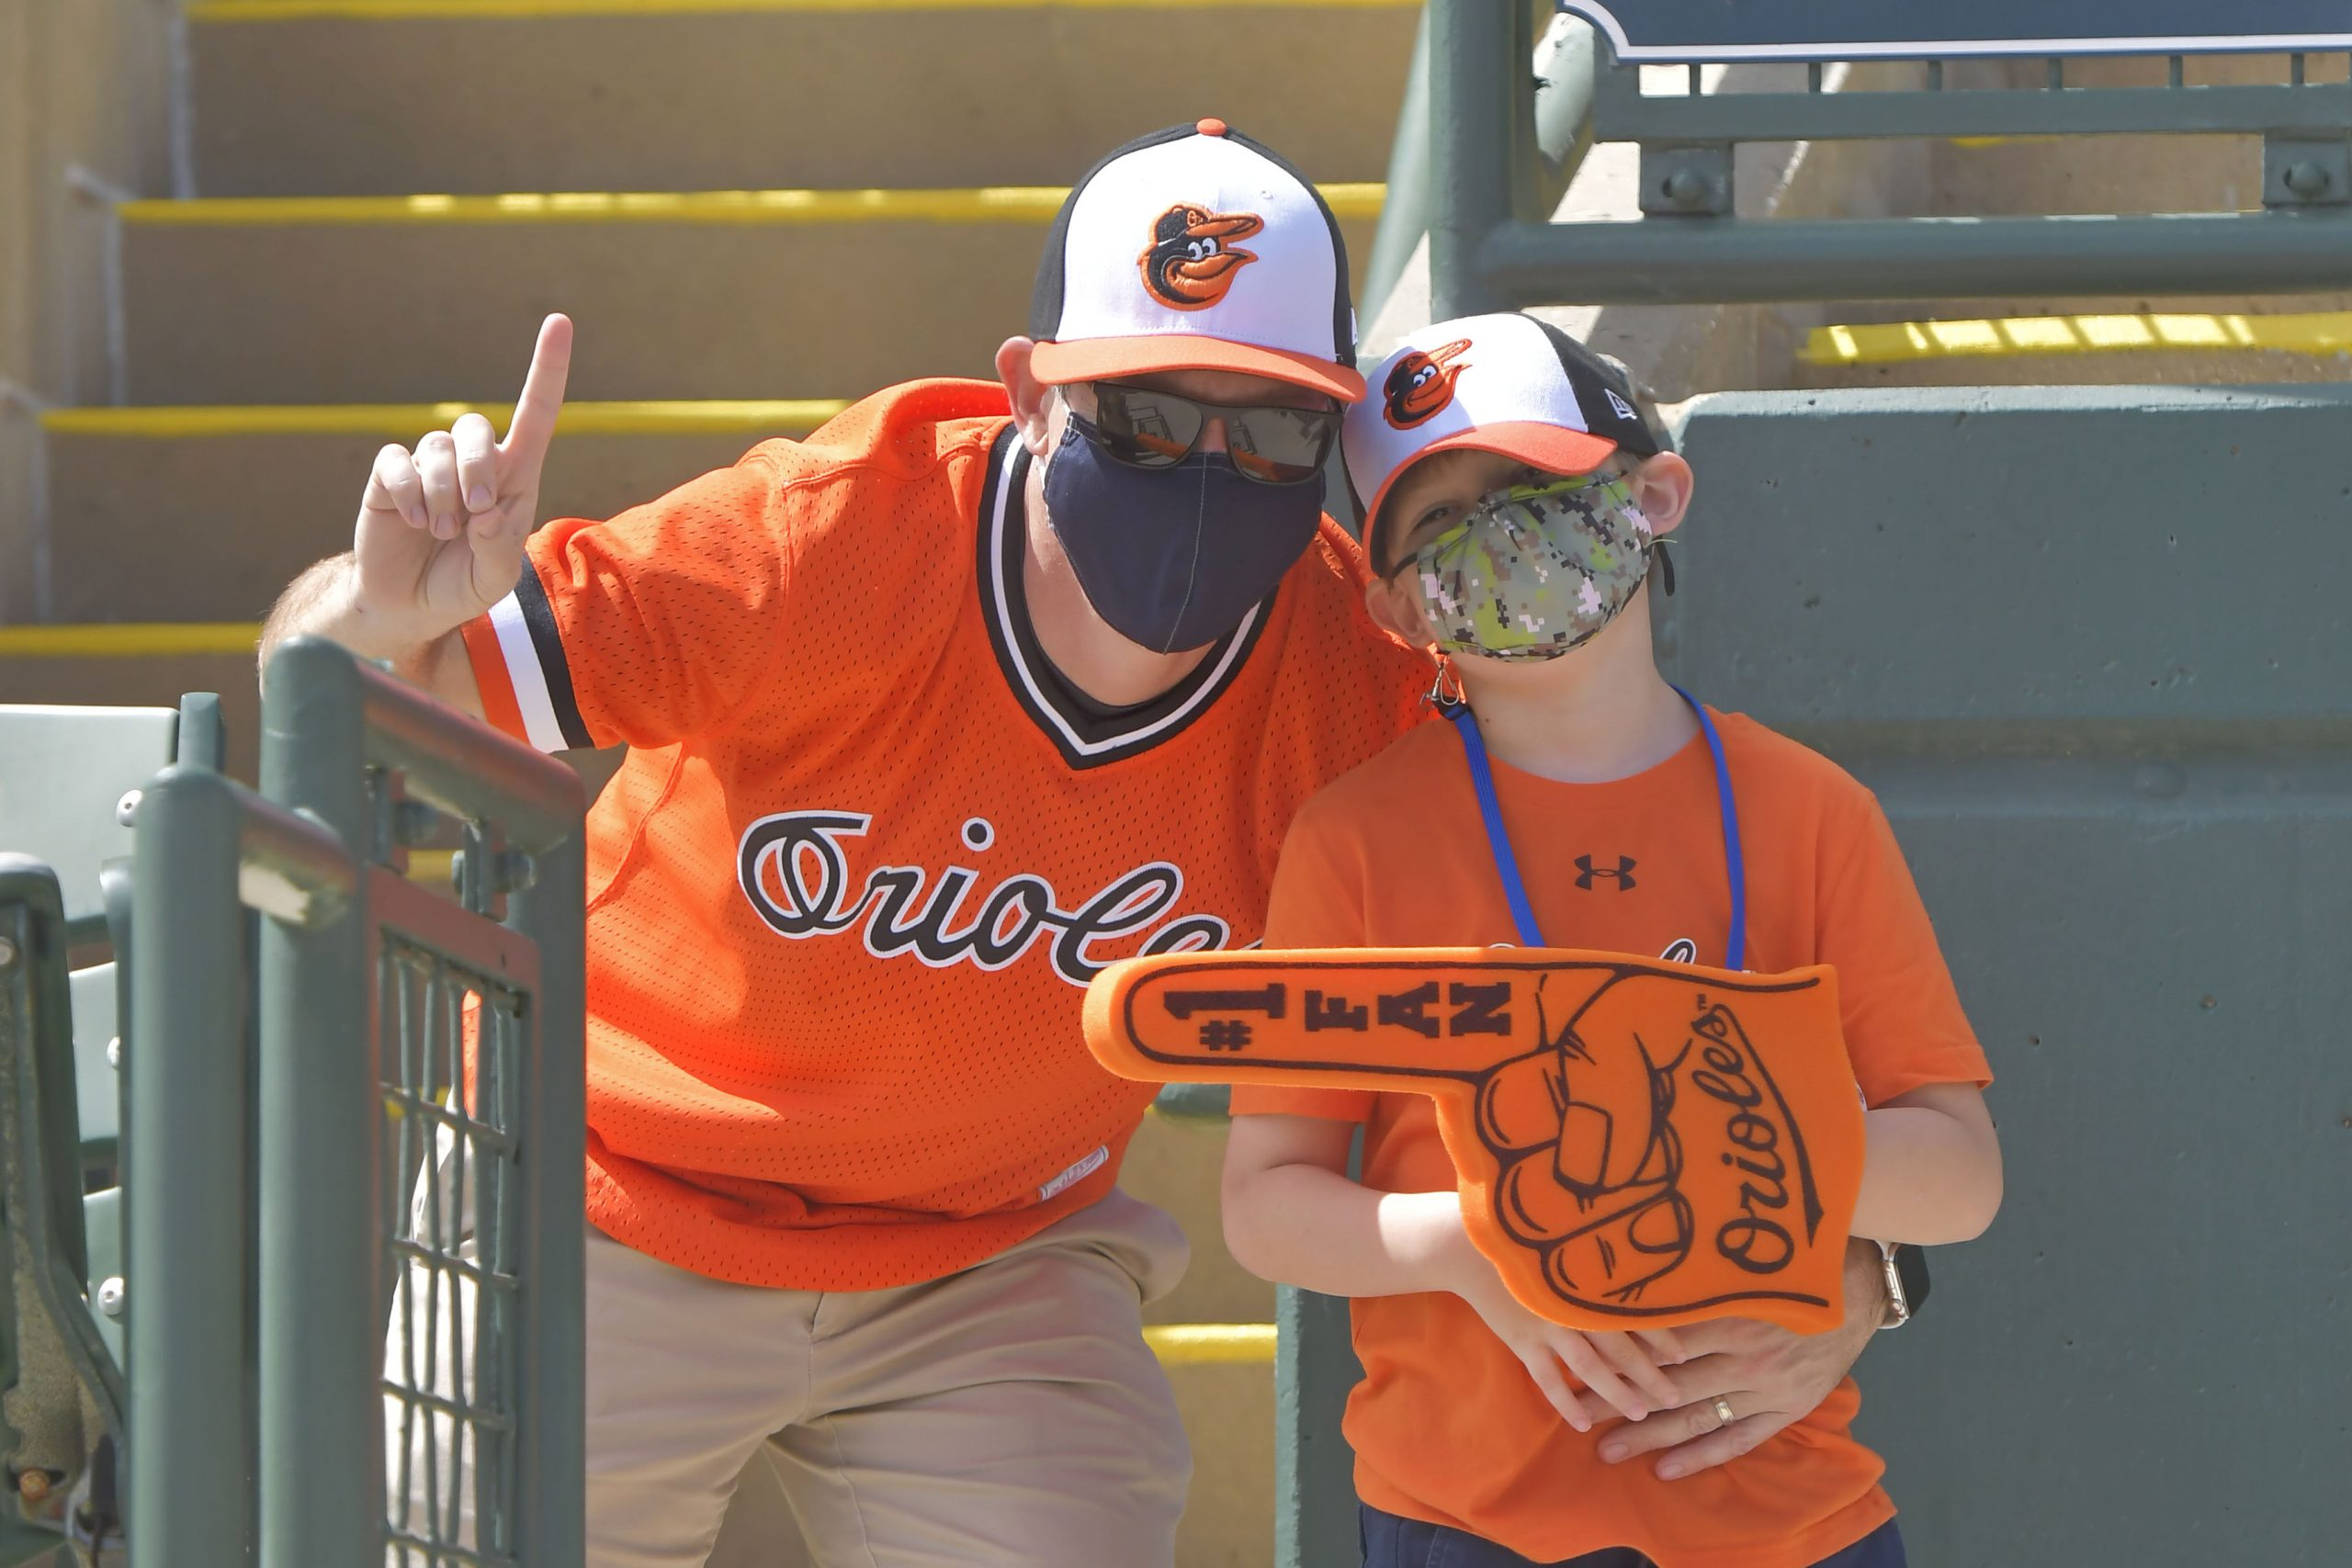 Orioles fans pose for a picture at a spring training game in Sarasota, Florida, on March 10 where a mask mandate was enforced. (Photo credit: Baltimore Orioles.)